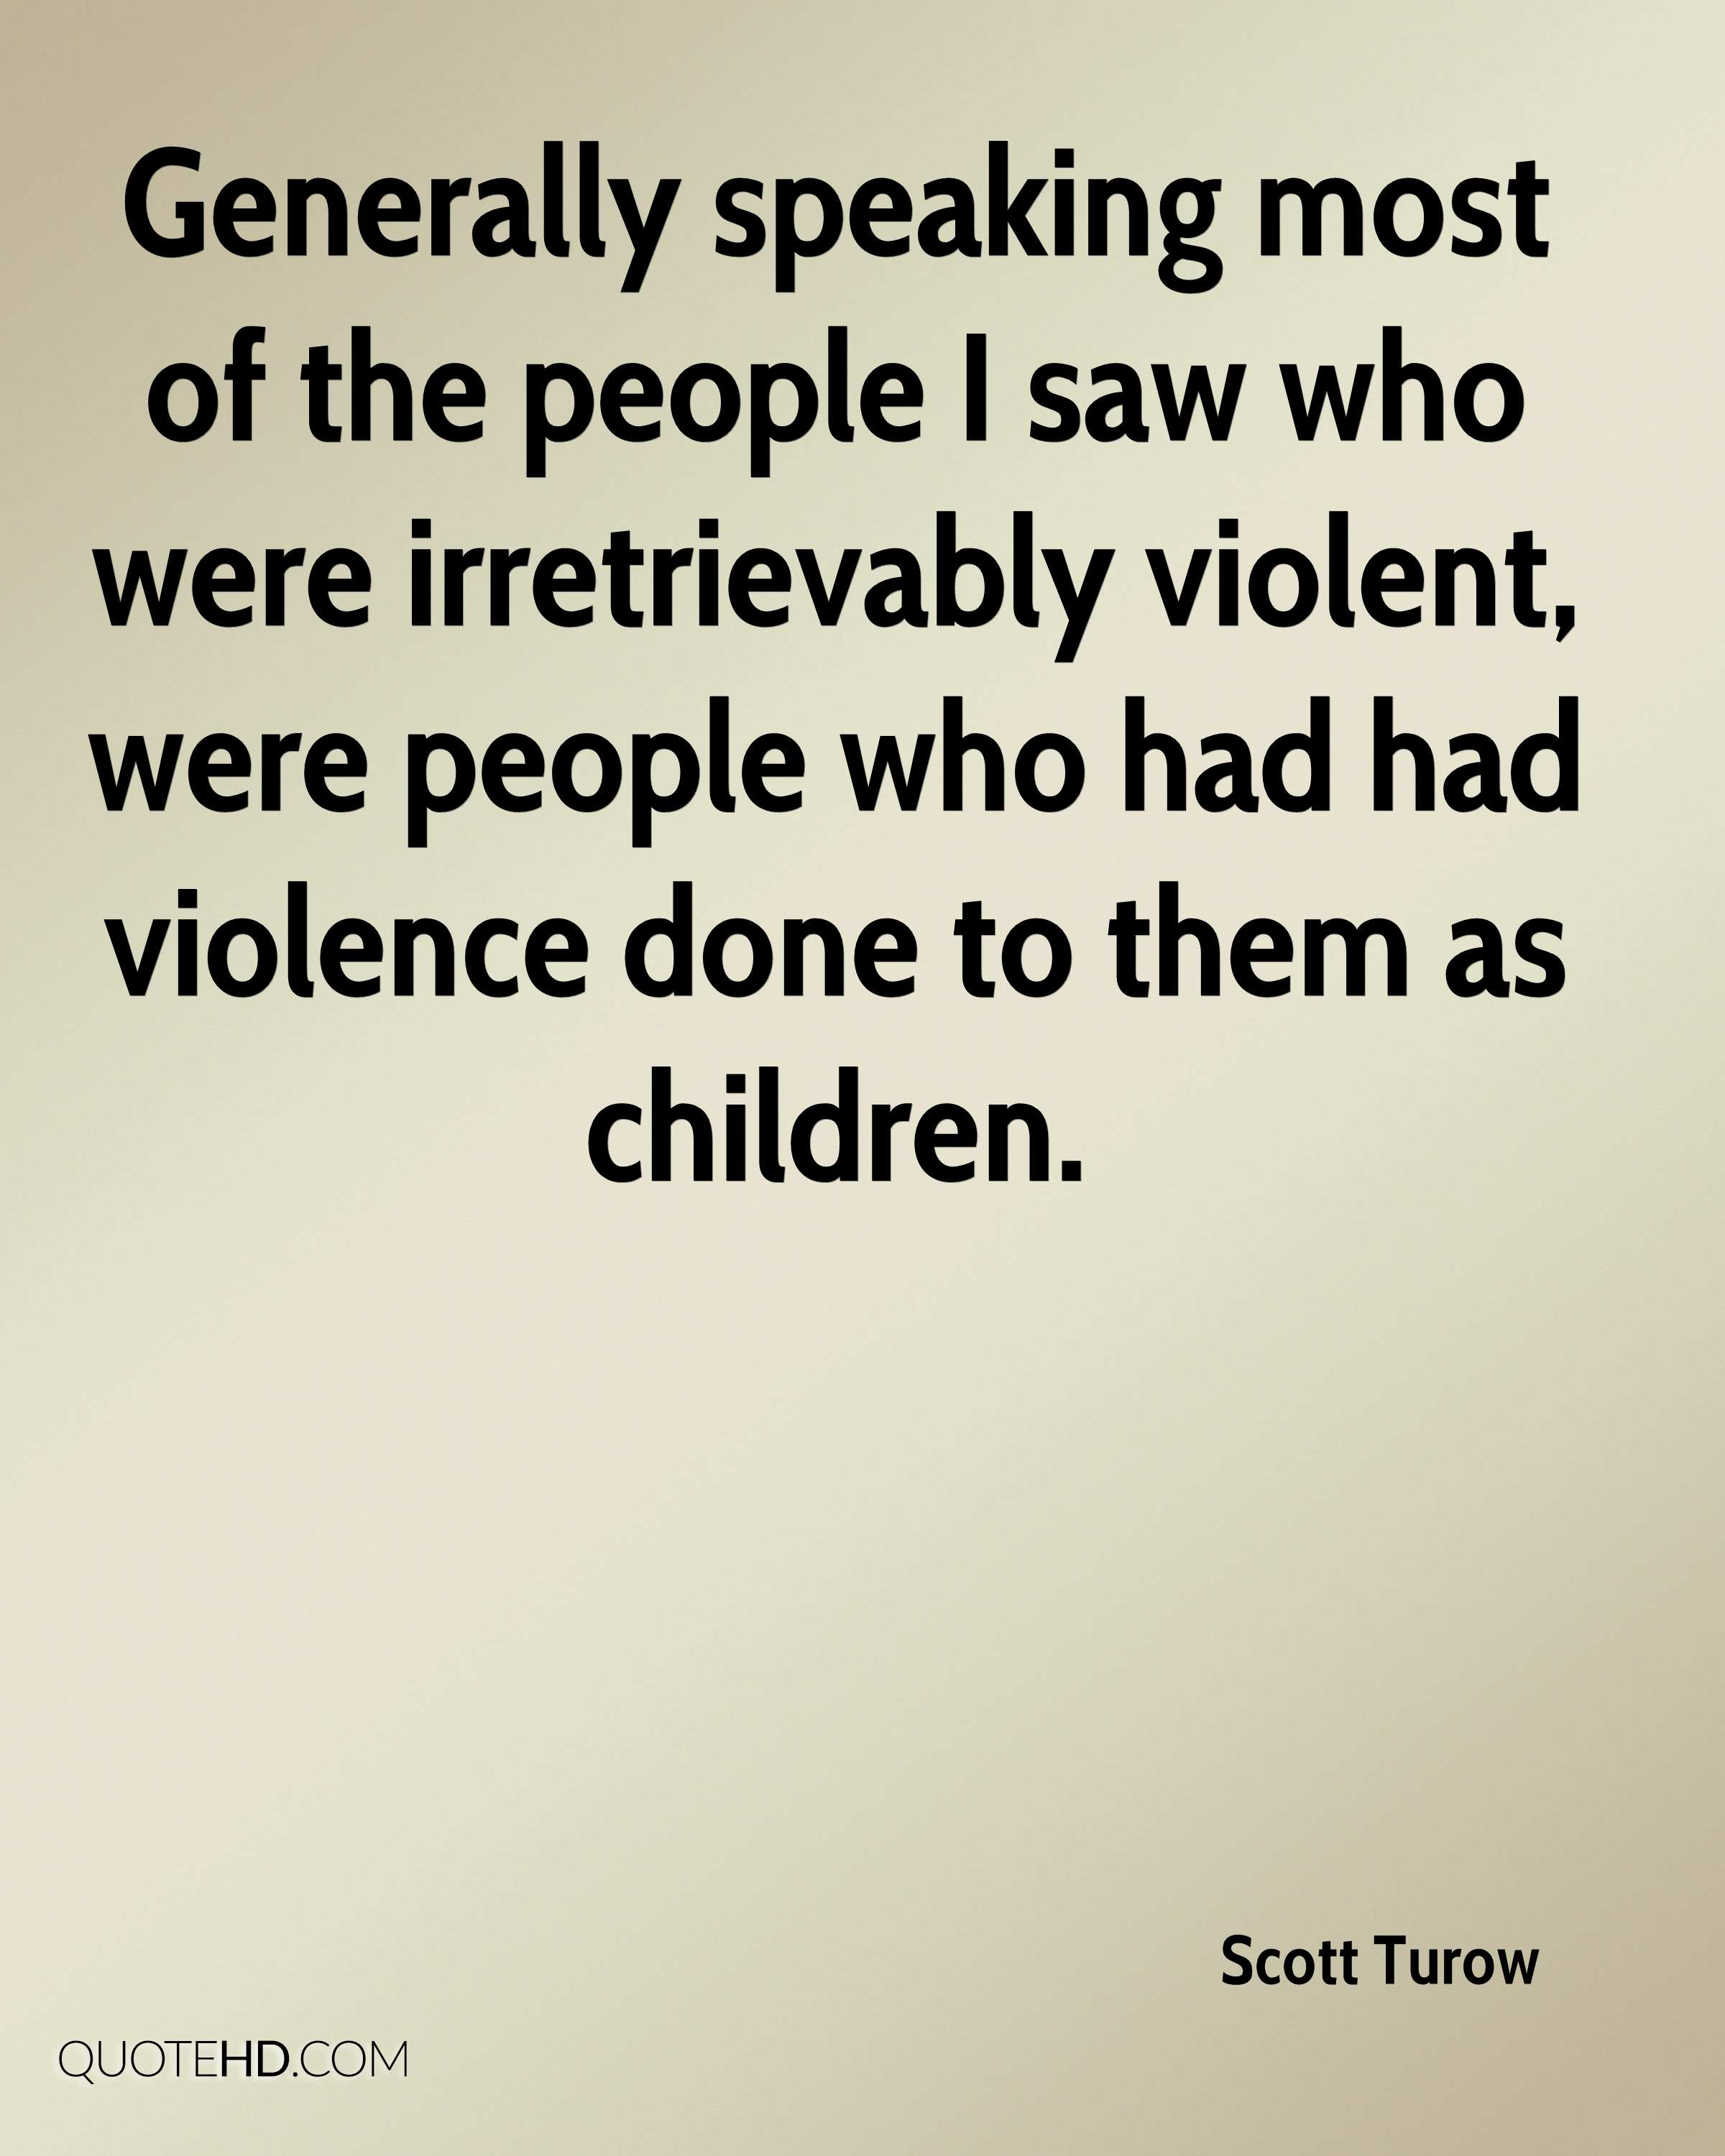 Generally speaking most of the people I saw who were irretrievably violent, were people who had had violence done to them as children.